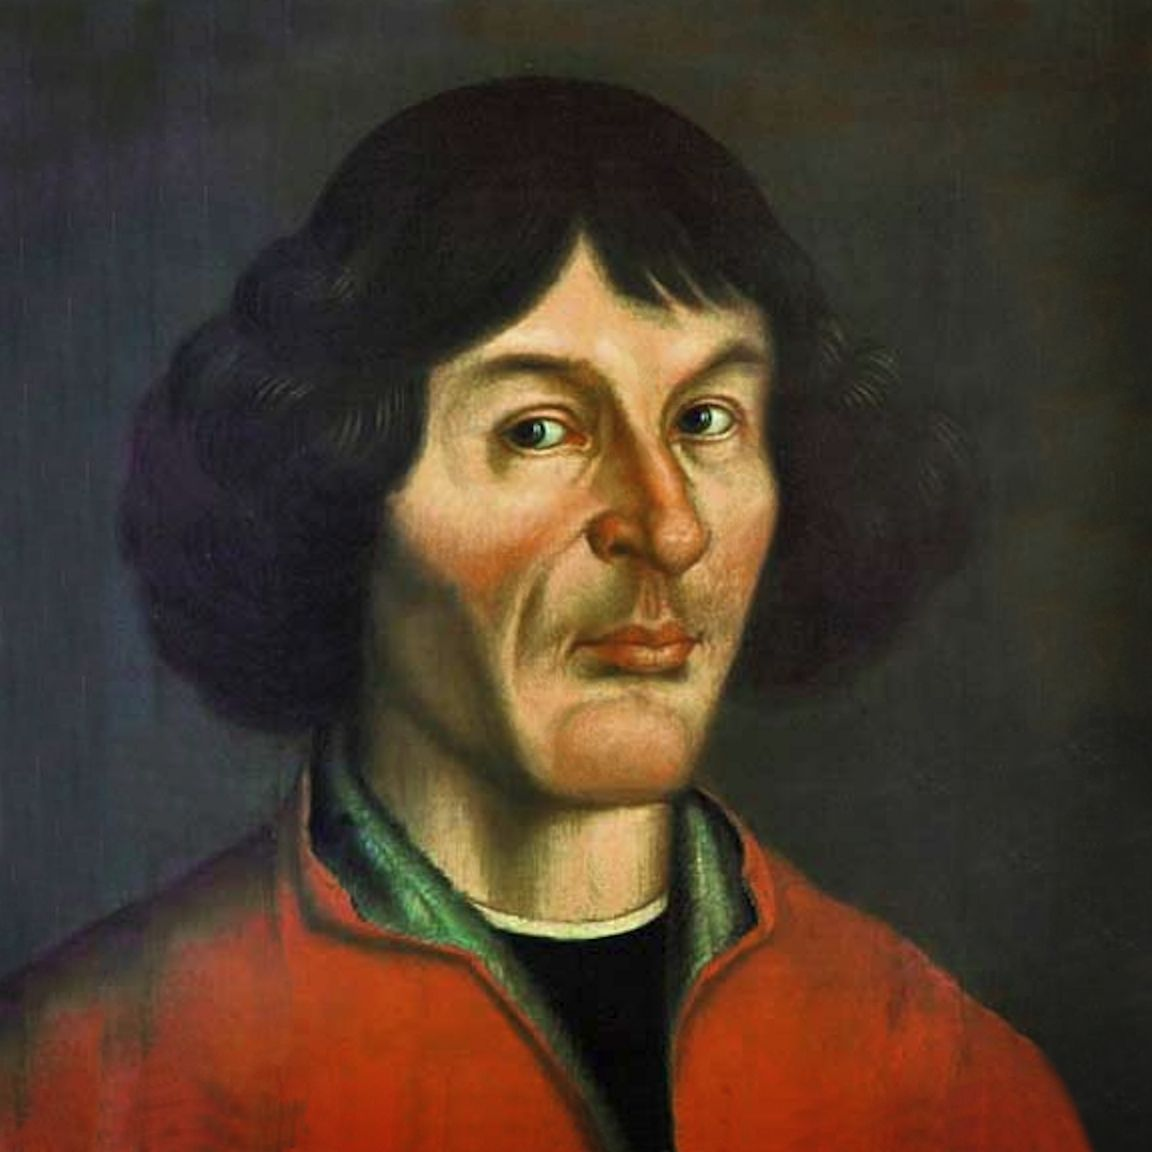 nicolaus copernicus essay The life of nicolaus copernicus, the astronomer essay by evel, junior high, 9th grade, a+, march 1997 nicolaus copernicus his life.